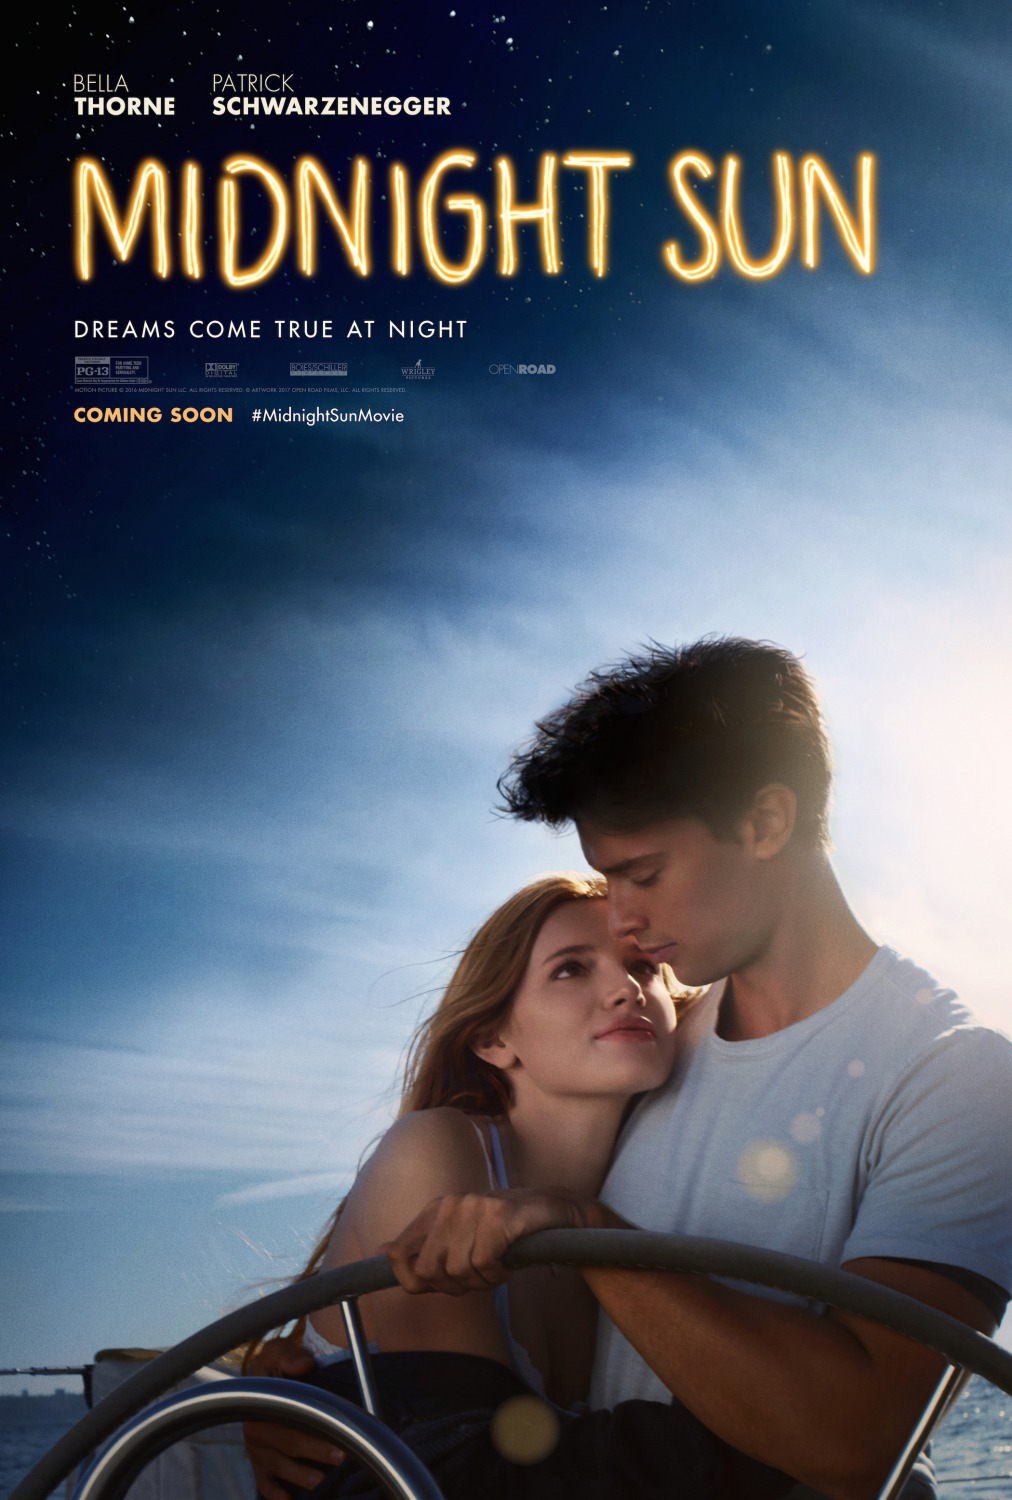 6 midnight sun top movie posters of 2018